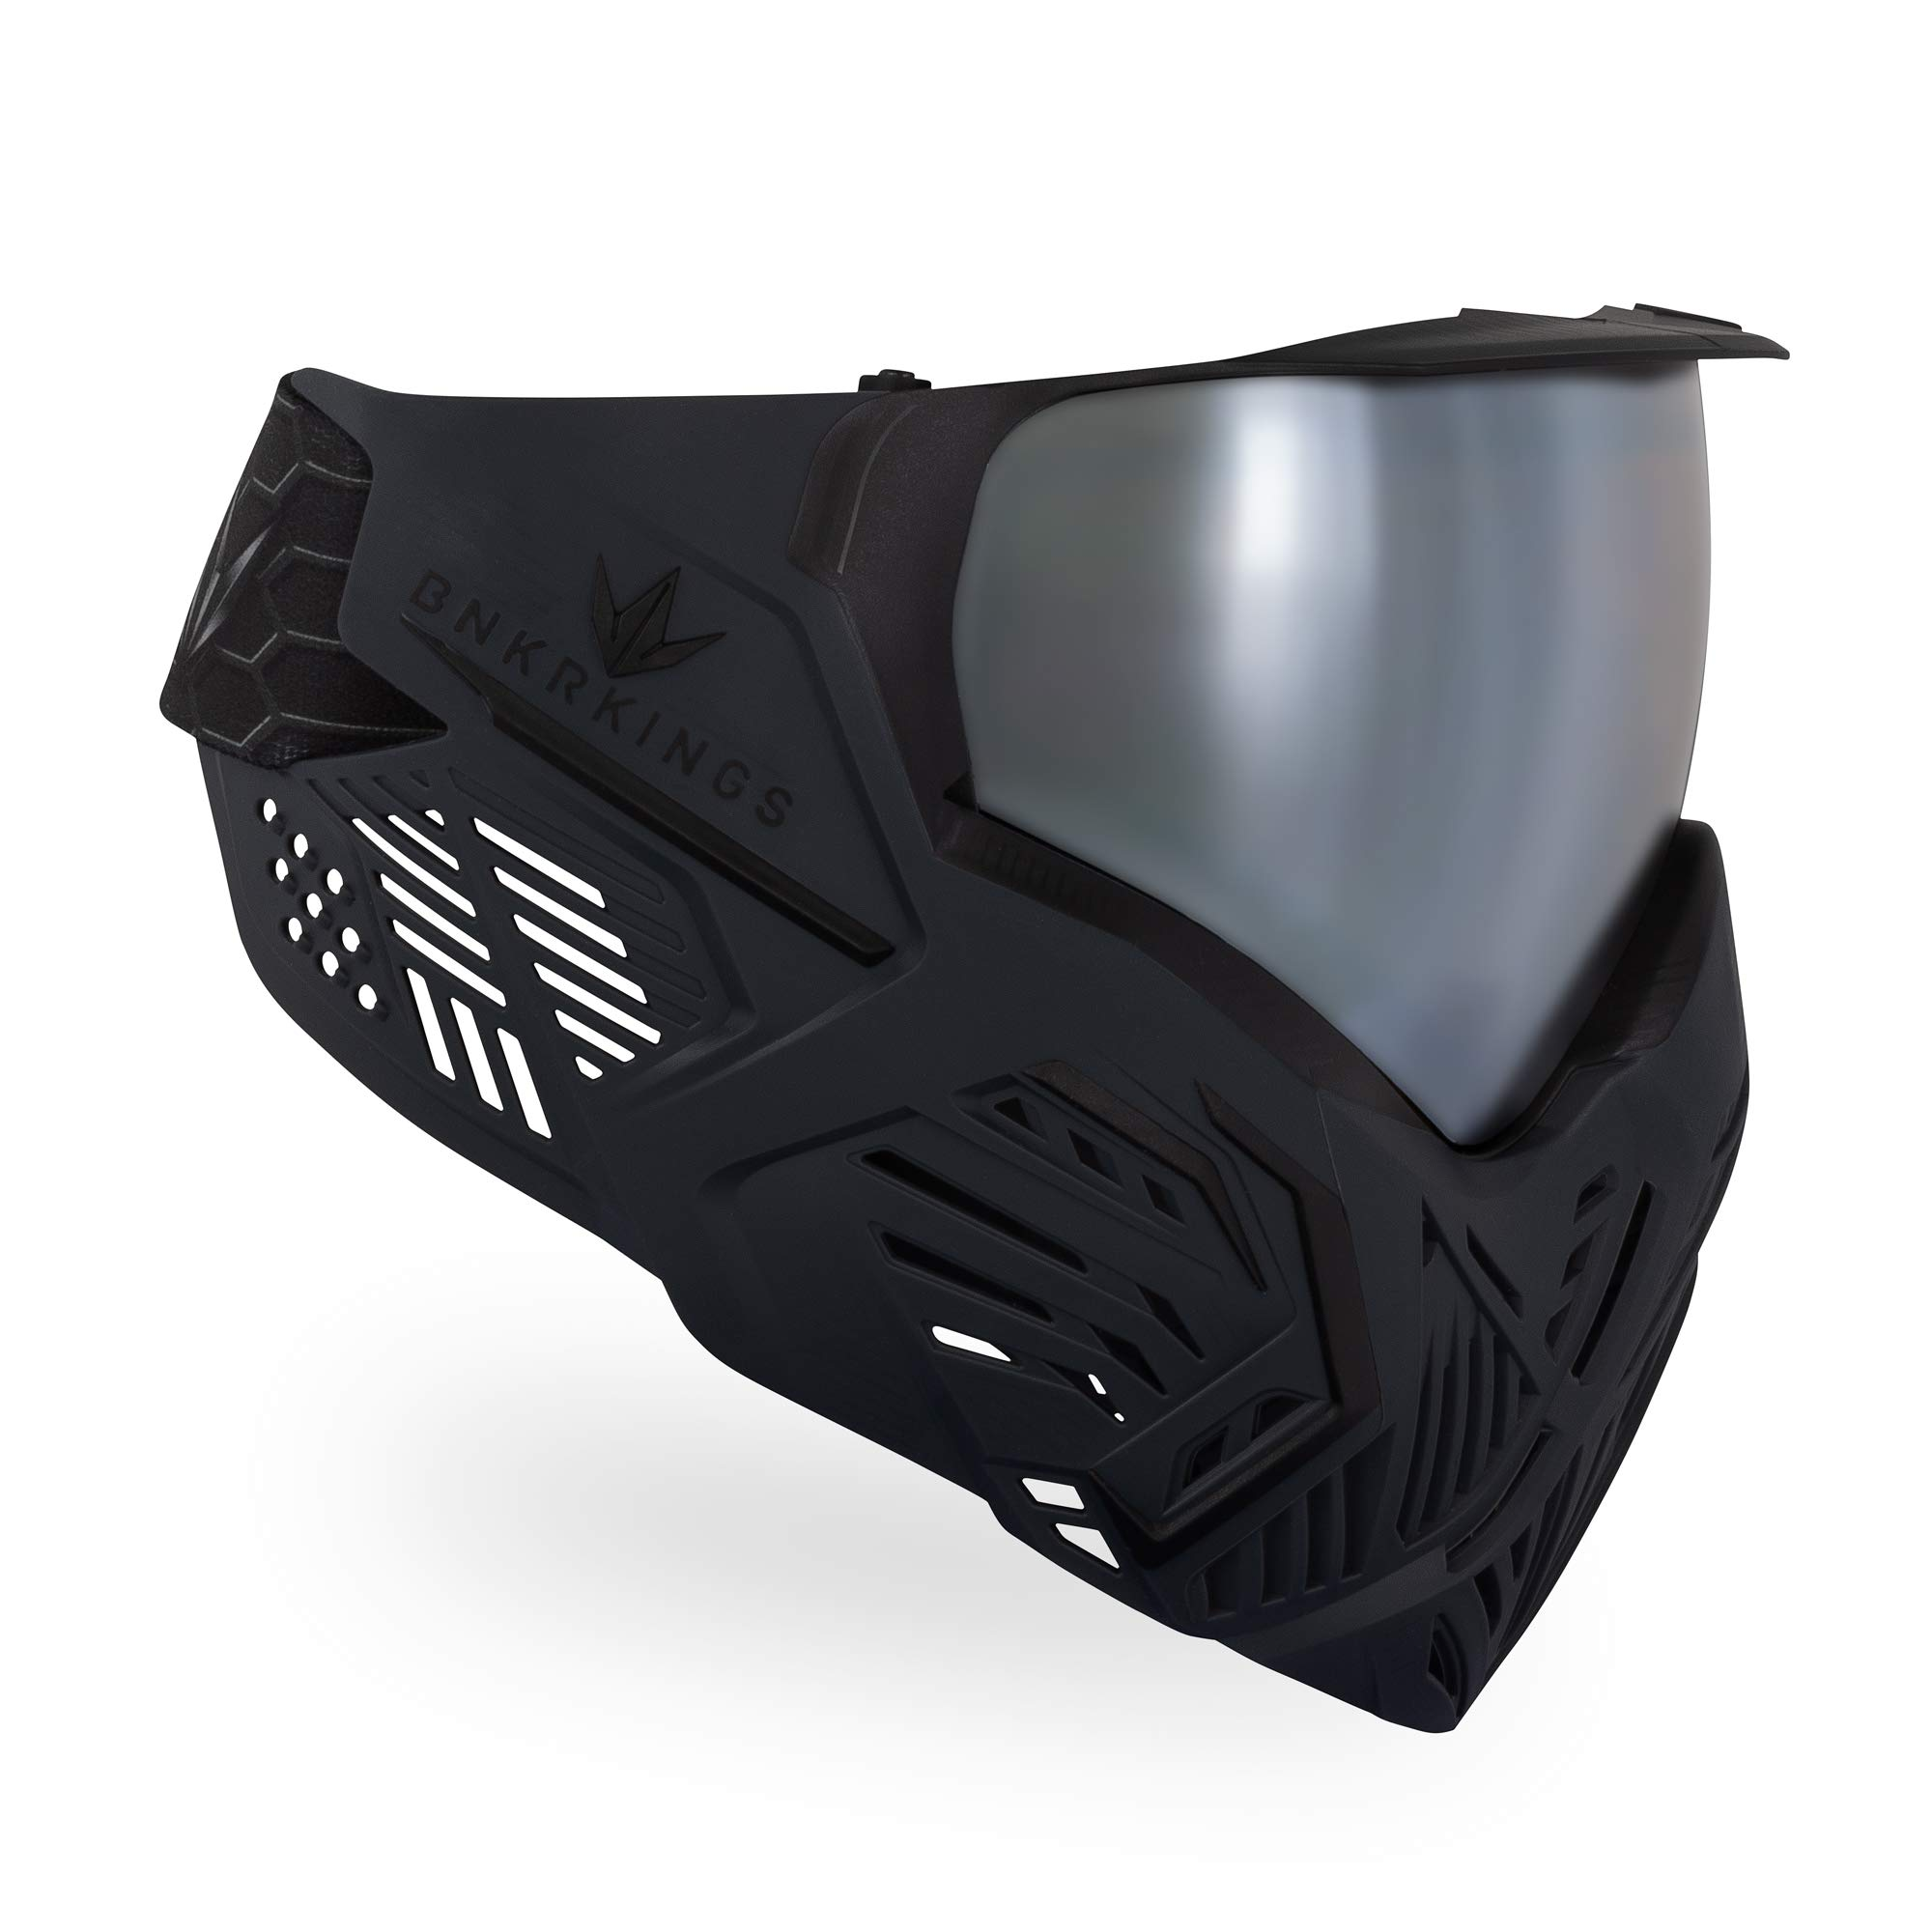 Bunker Kings CMD Paintball Goggle/Mask - Black Carbon by Bnkr Kings